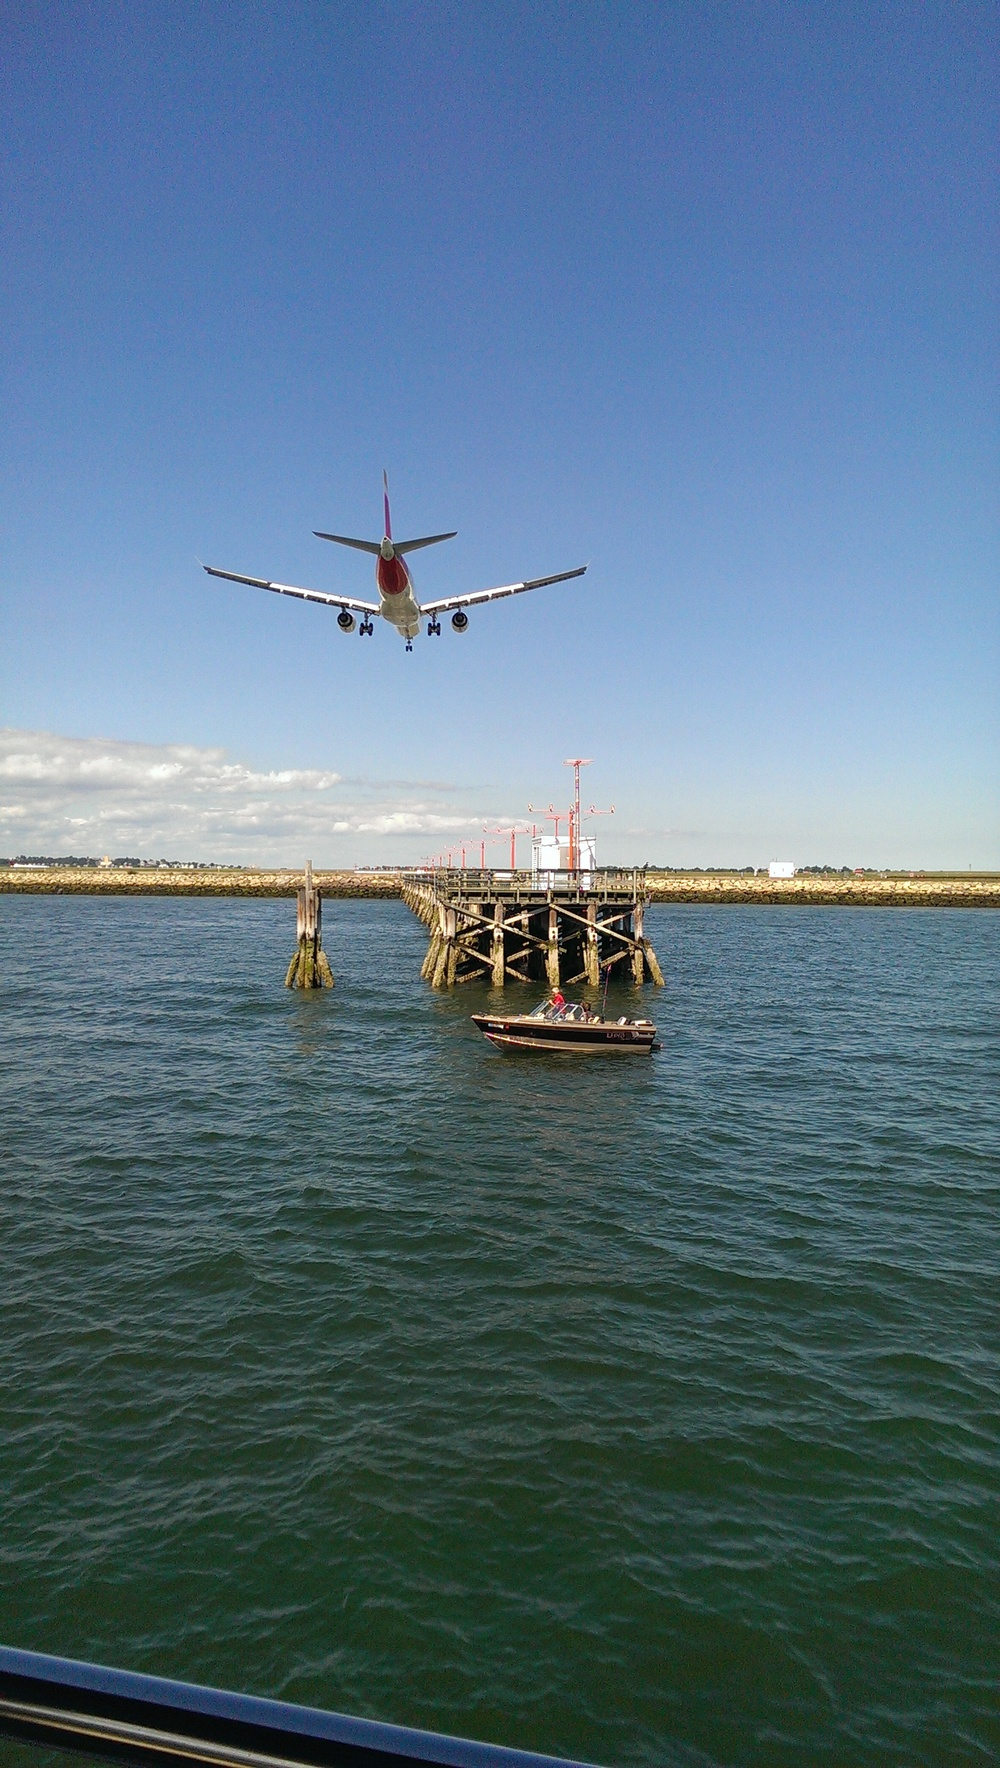 Commercial jets fly over our boat on its way to landing at Logan Airport.